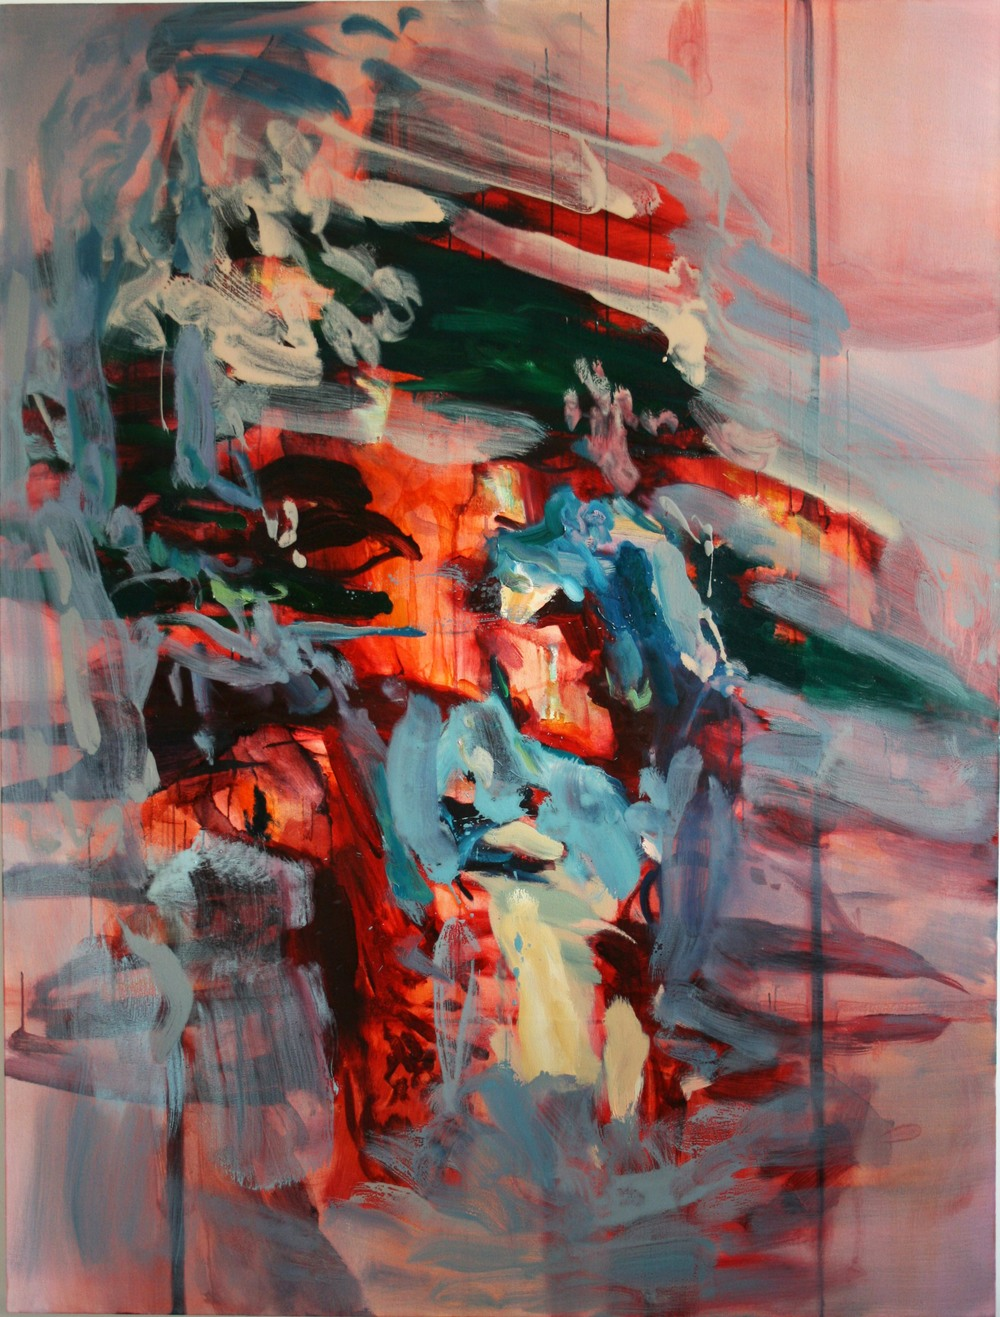 Untitled #1  2011  oil on canvas  154 x 117 cm